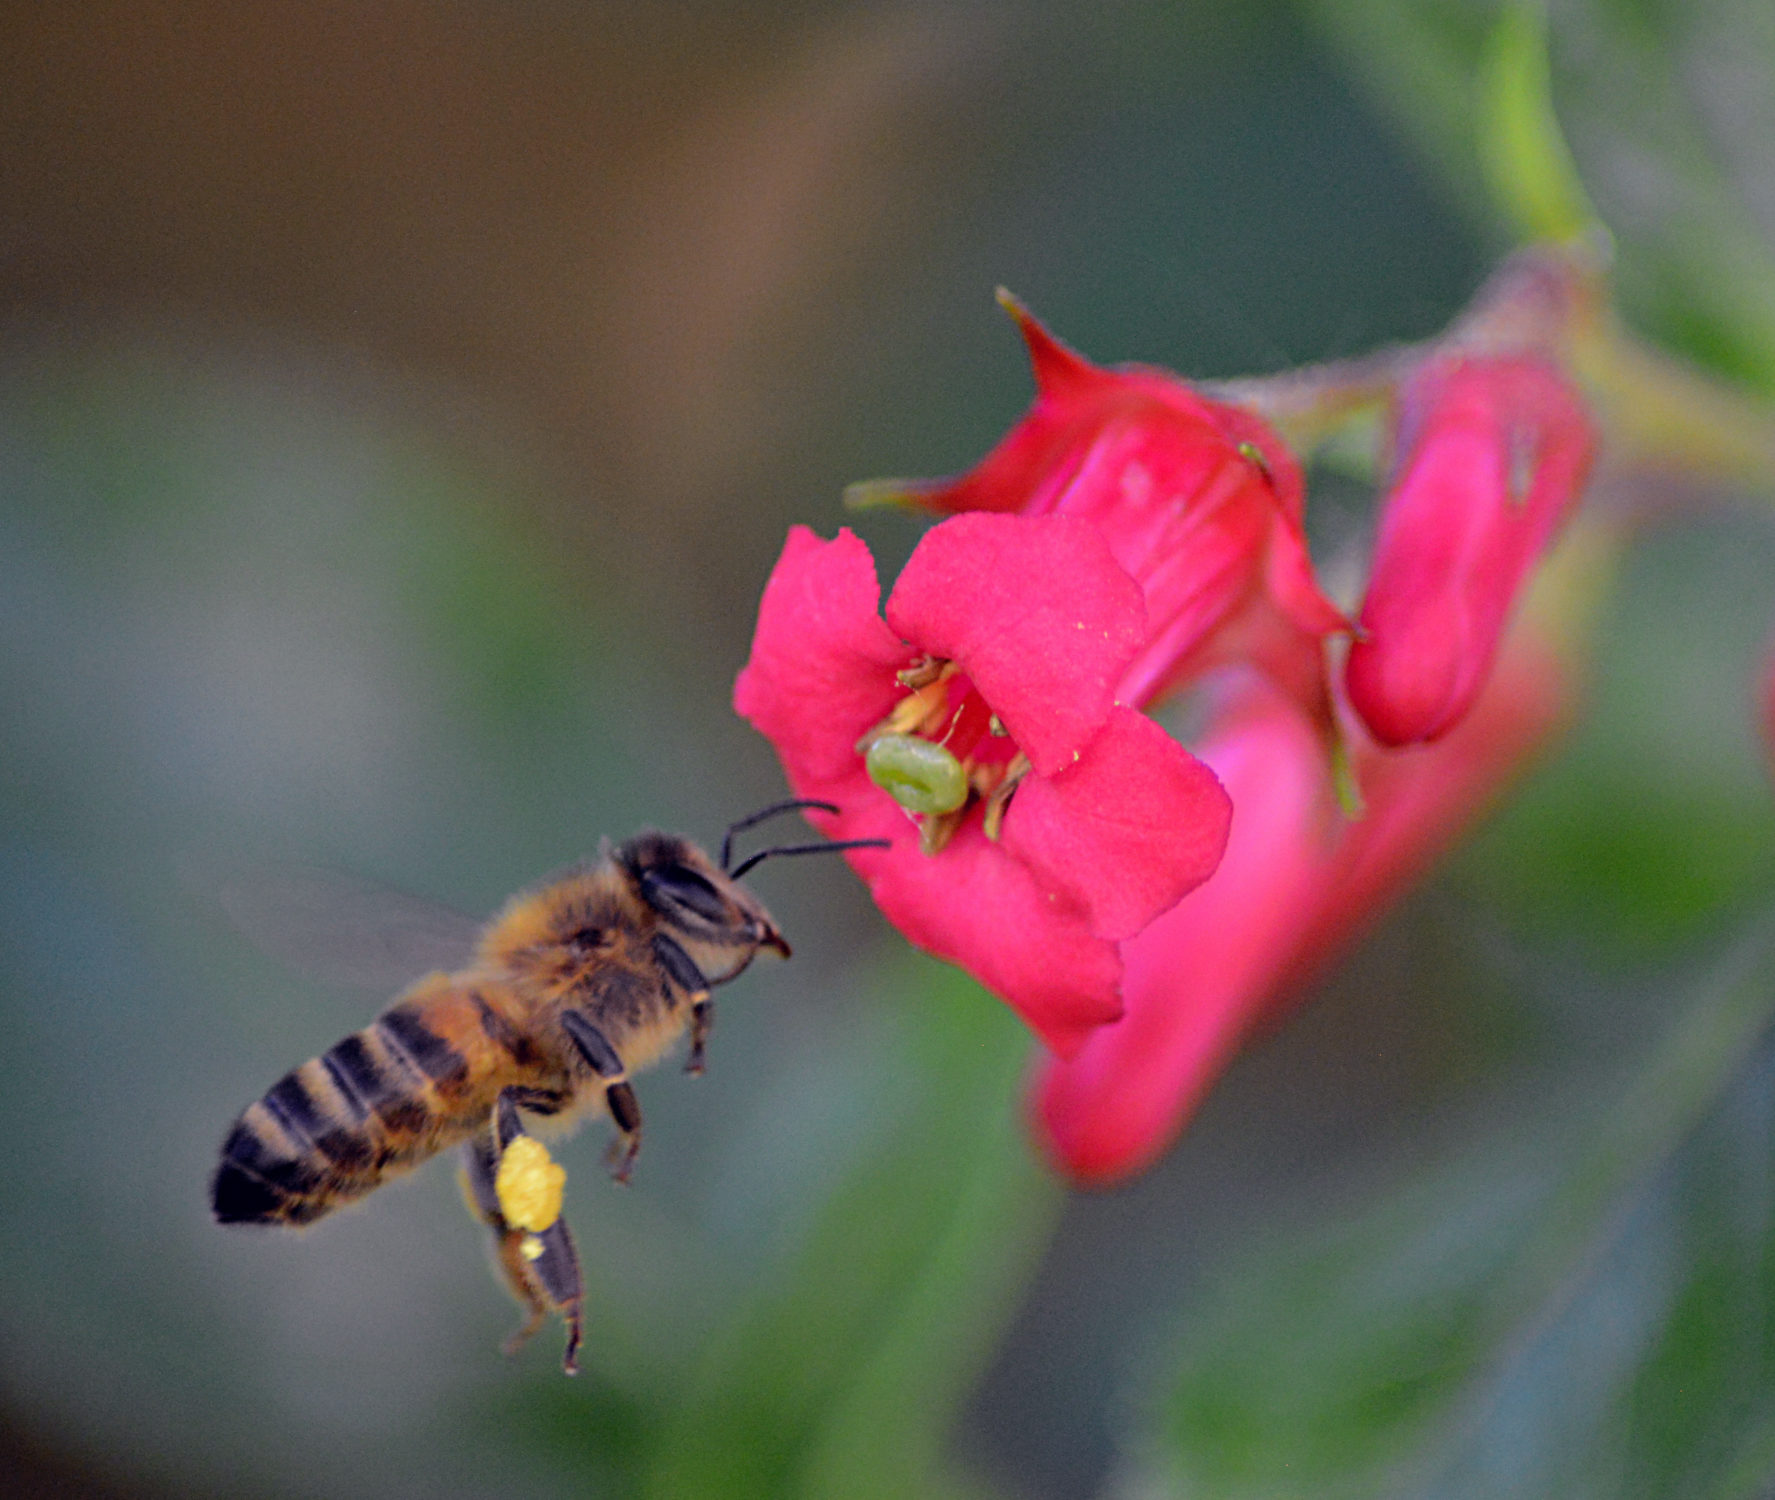 Close-up photograph of a bee collecting pollen from a vibrant pink Escallonia flower.